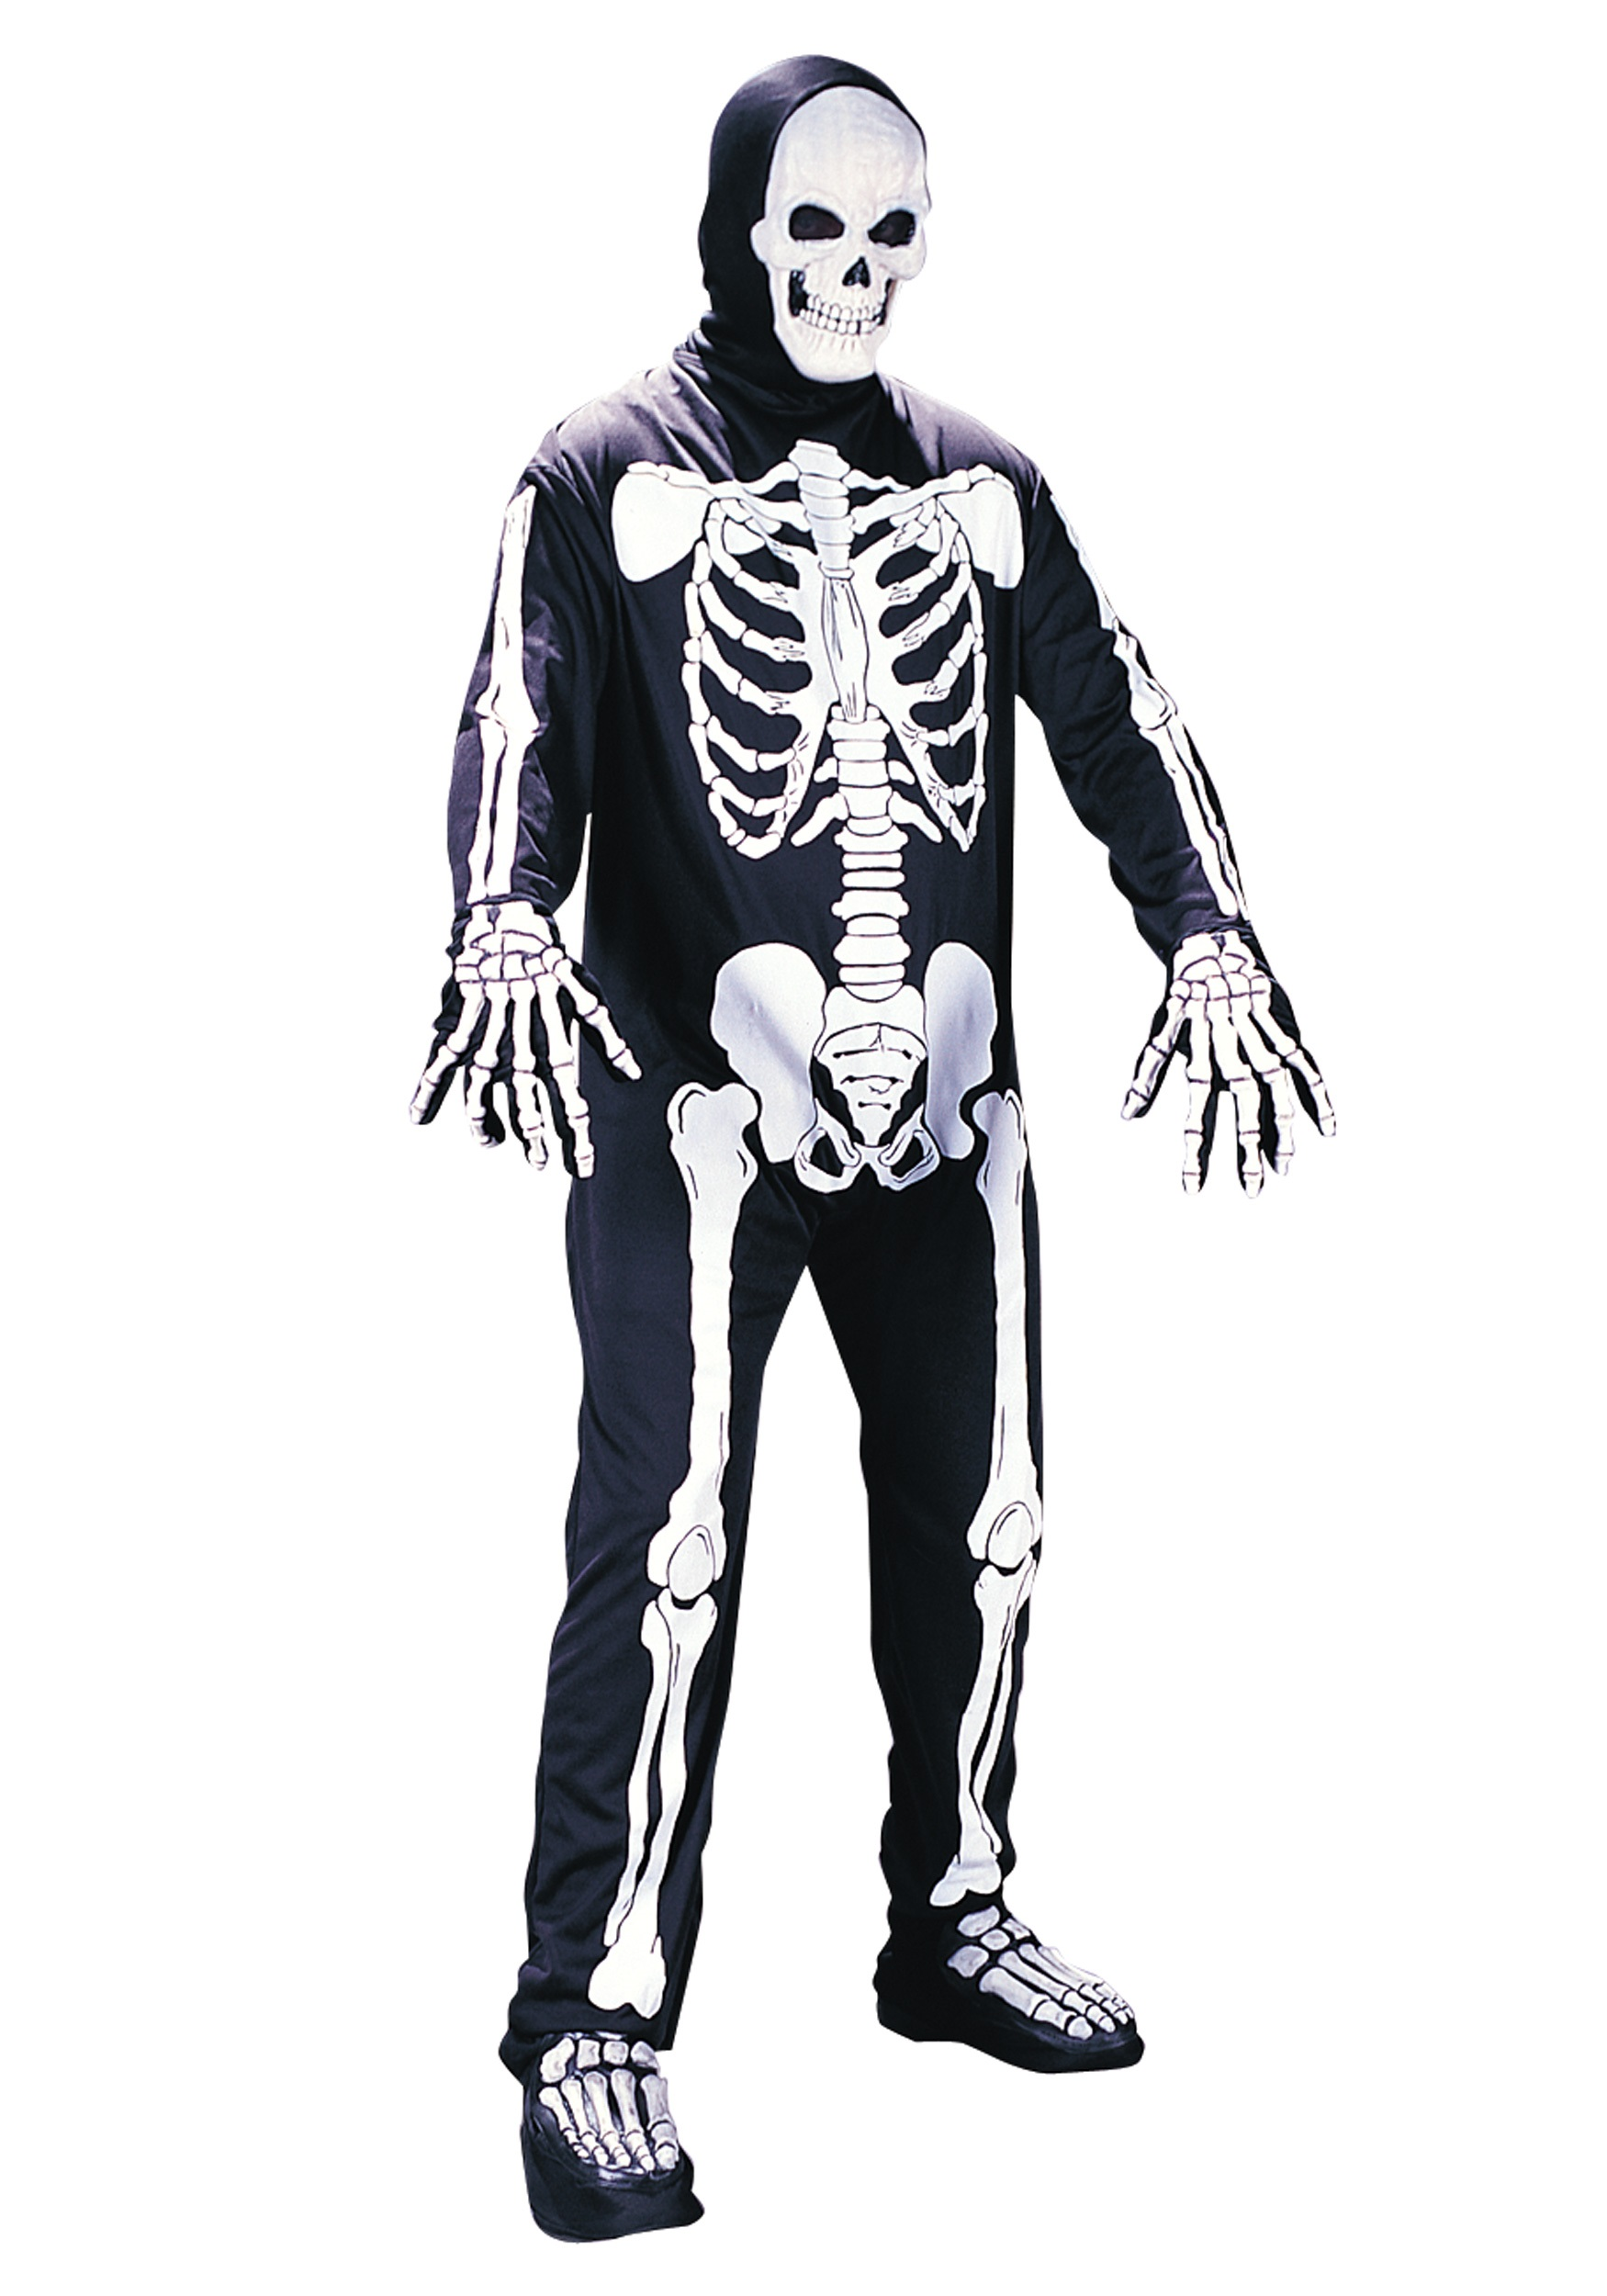 Skeleton cowboy costume - photo#9